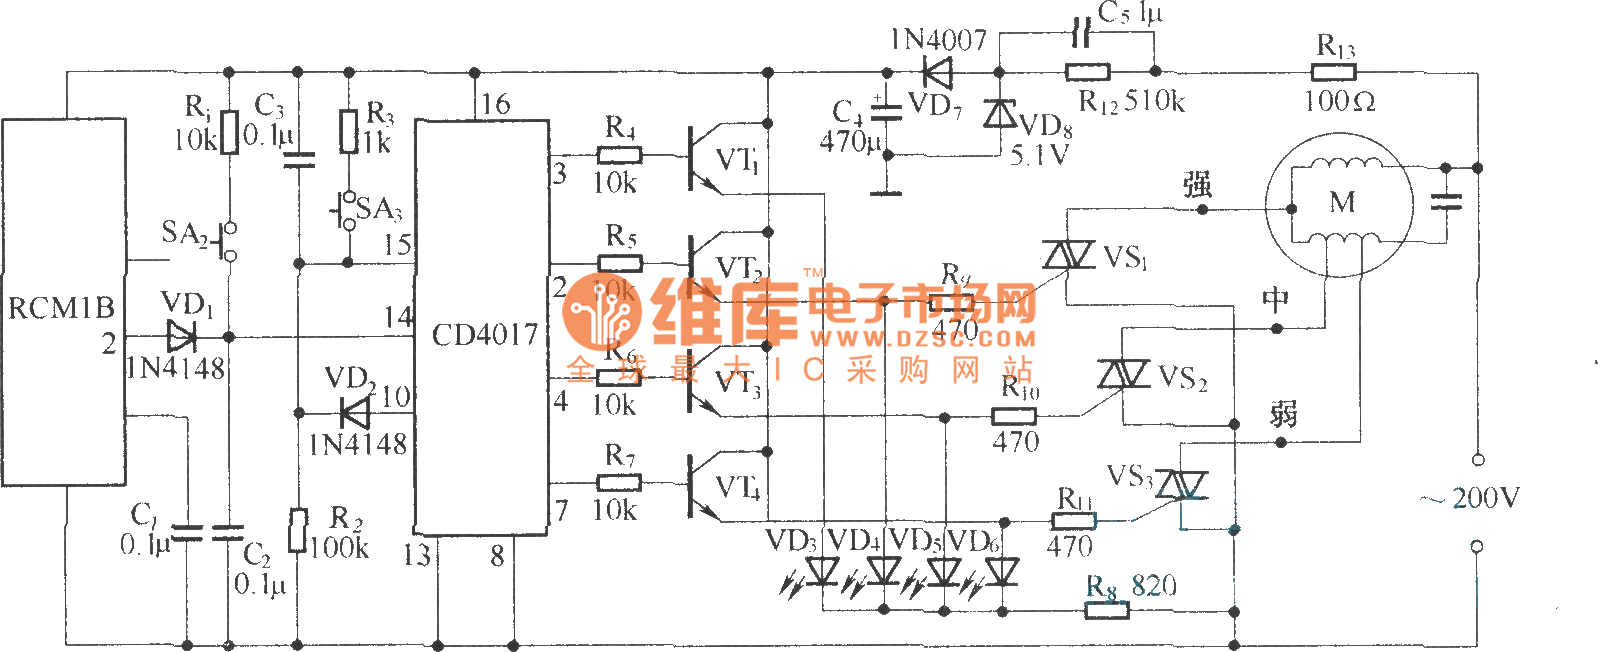 hight resolution of wireless remote control fan speed controller circuit diagram rcm1a rh seekic com gama electronics remote wiring diagram remote control circuit board